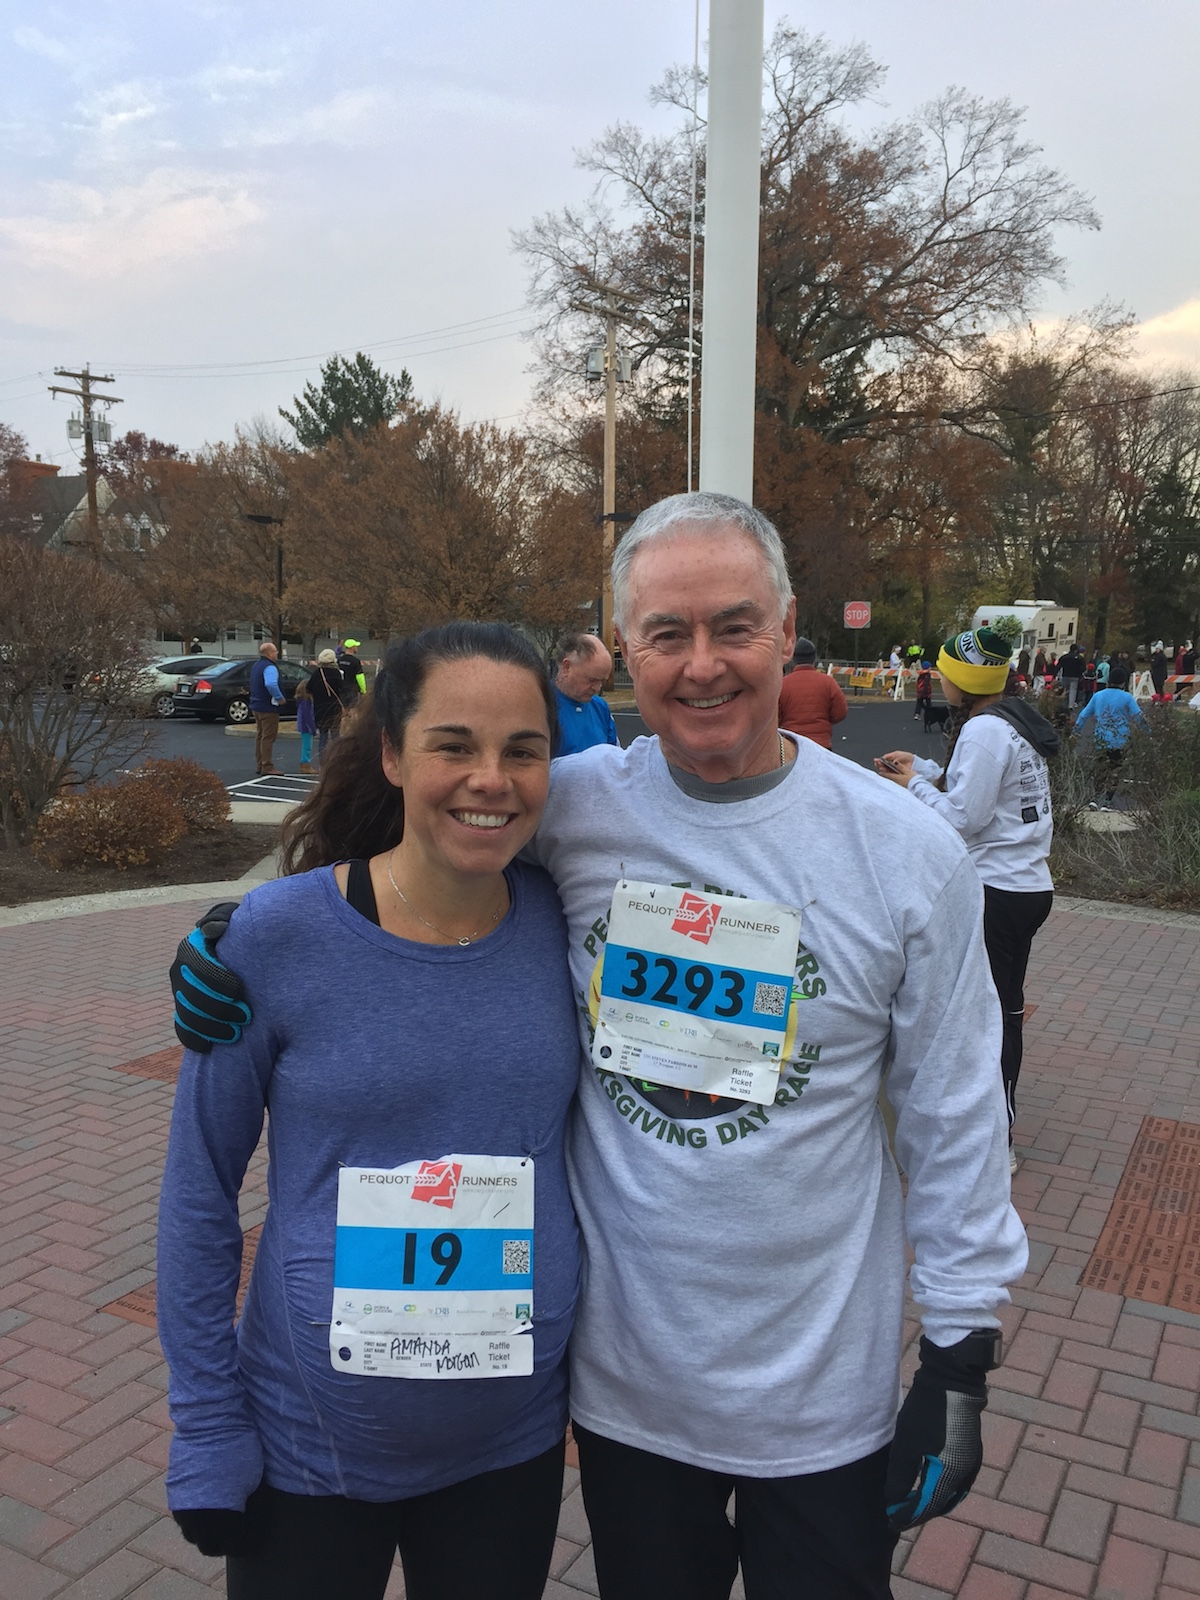 Amanda and her father at last year's Turkey Trot.